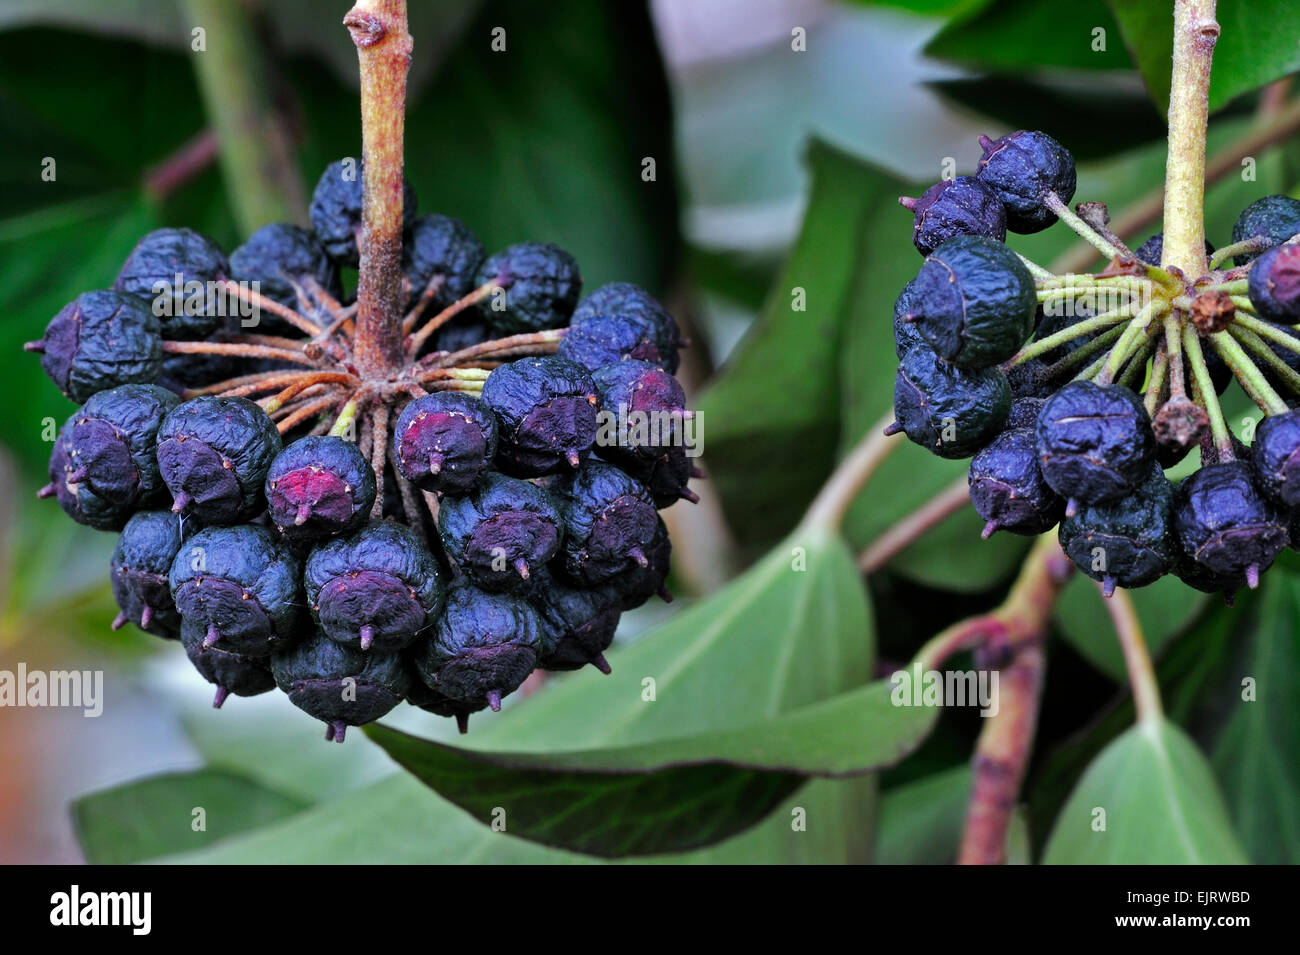 Edera comune (Hedera helix) close up di frutti di bosco Foto Stock